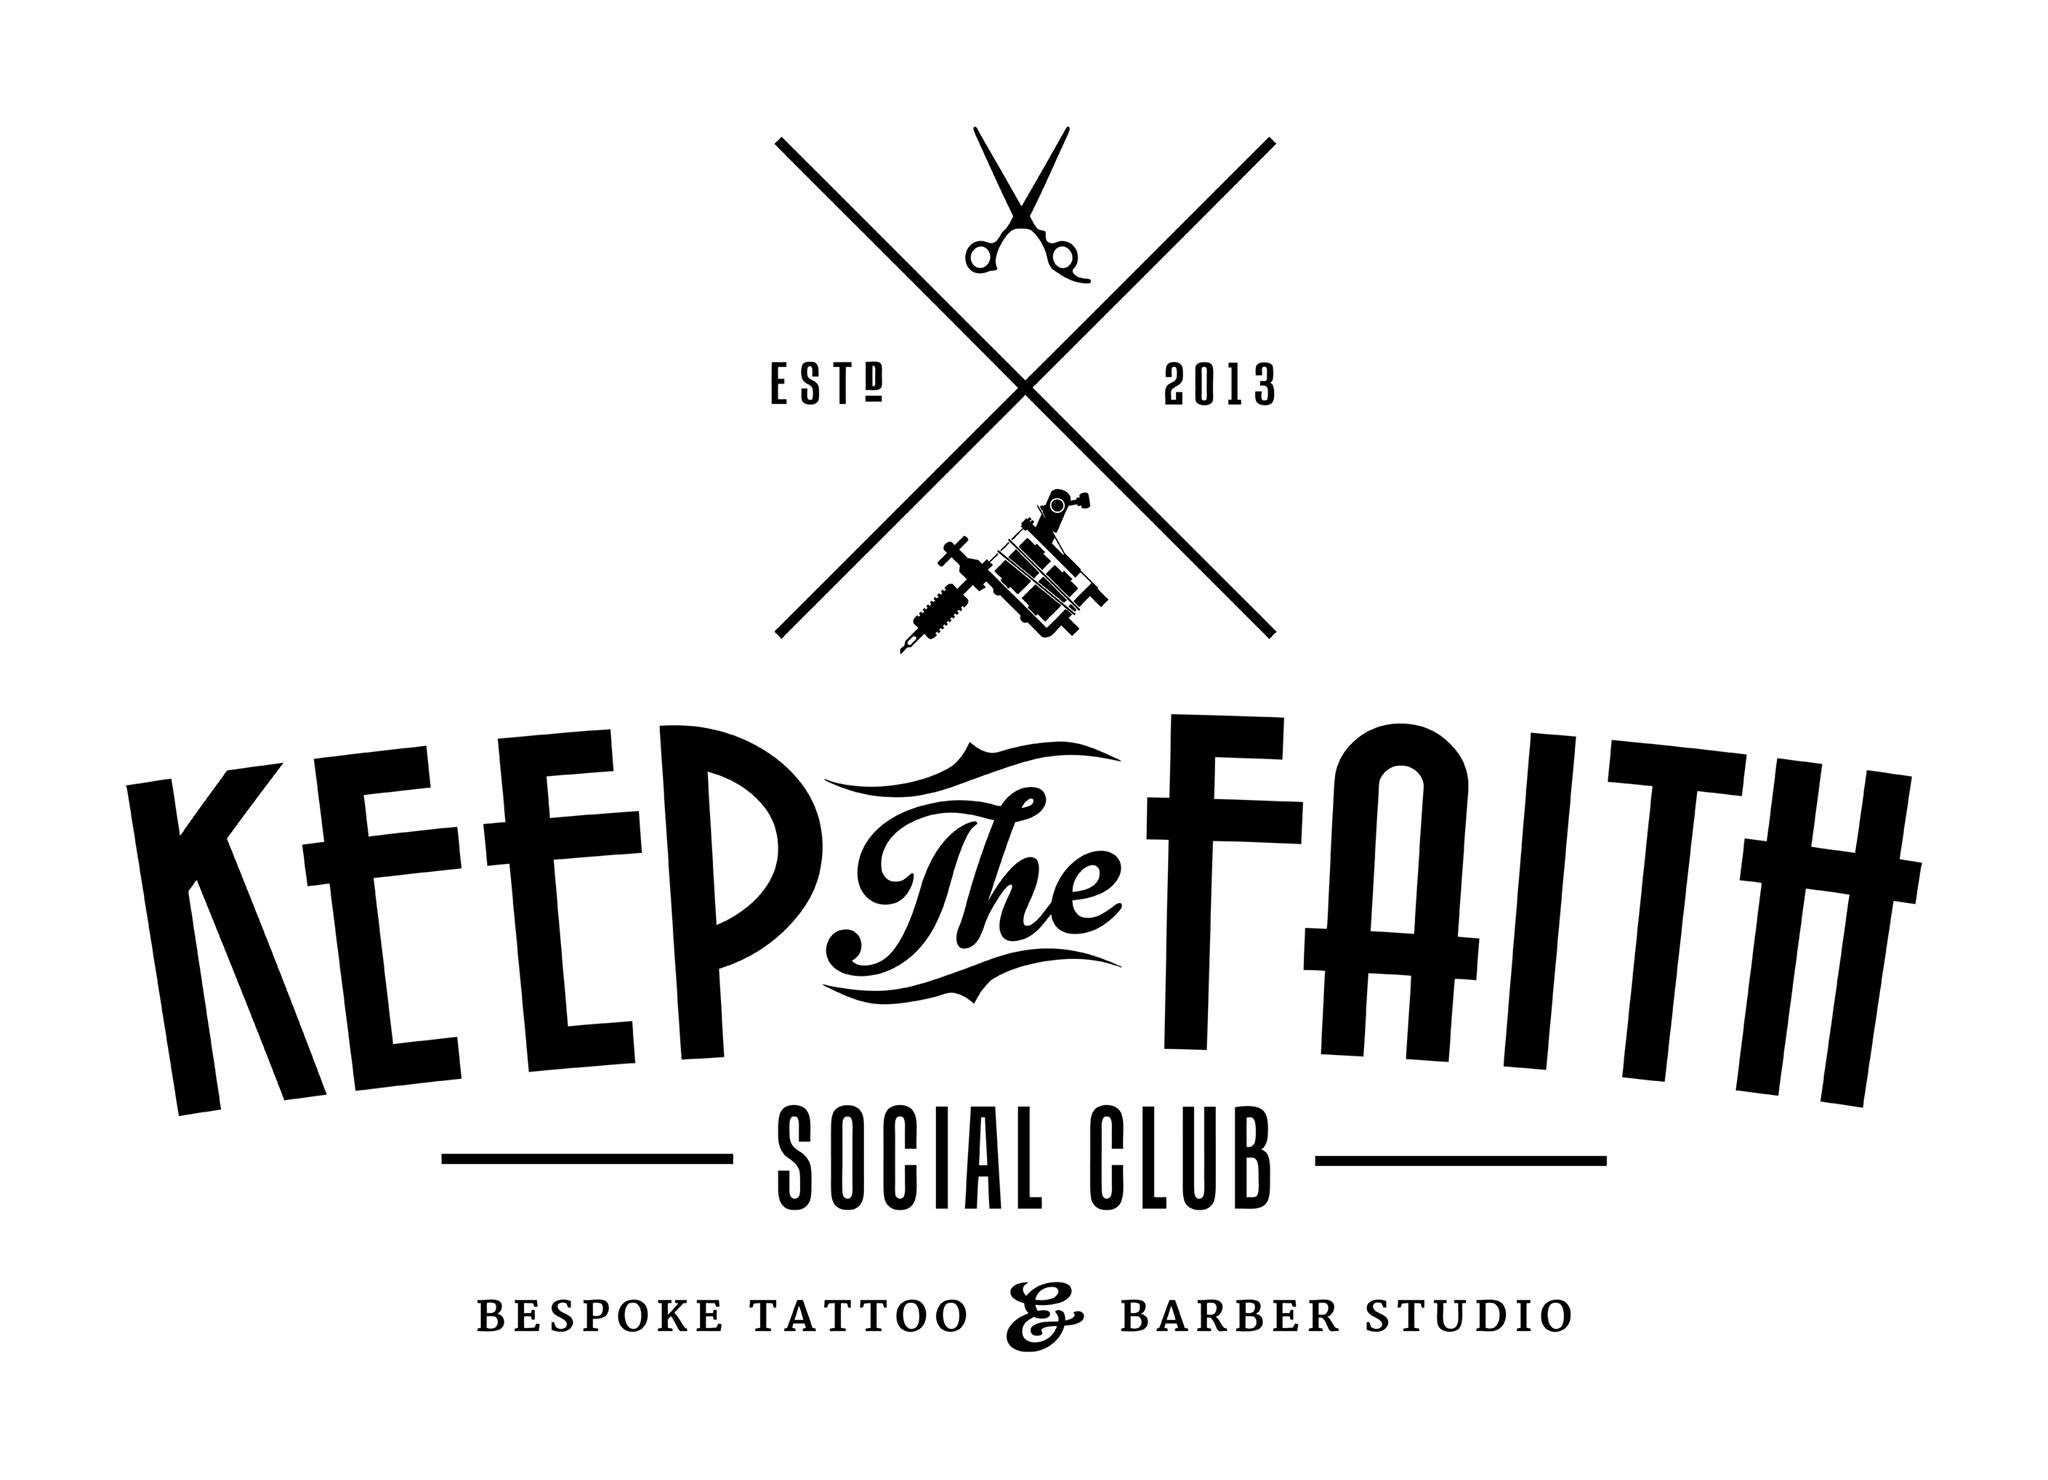 Keep the faith social club